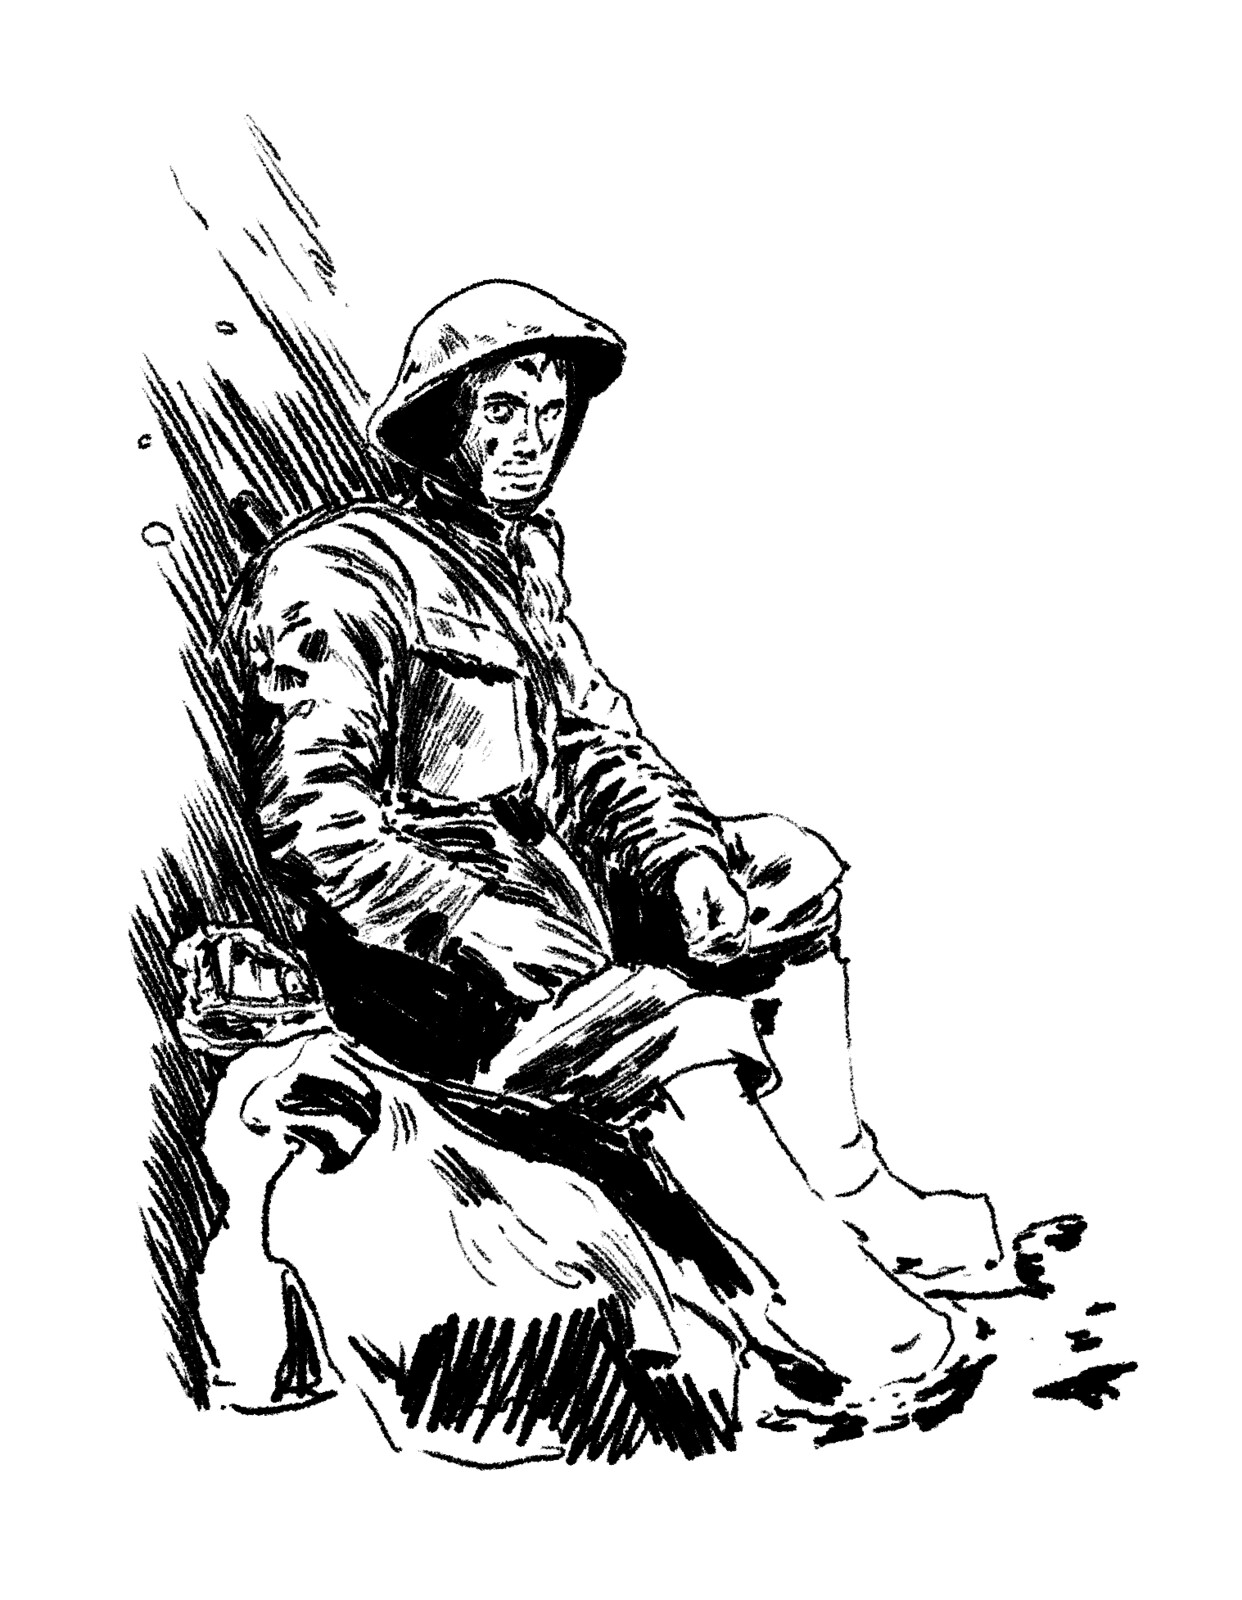 The initial sketch of the character from the reference image of a WW2 soldier resting in a dugout.